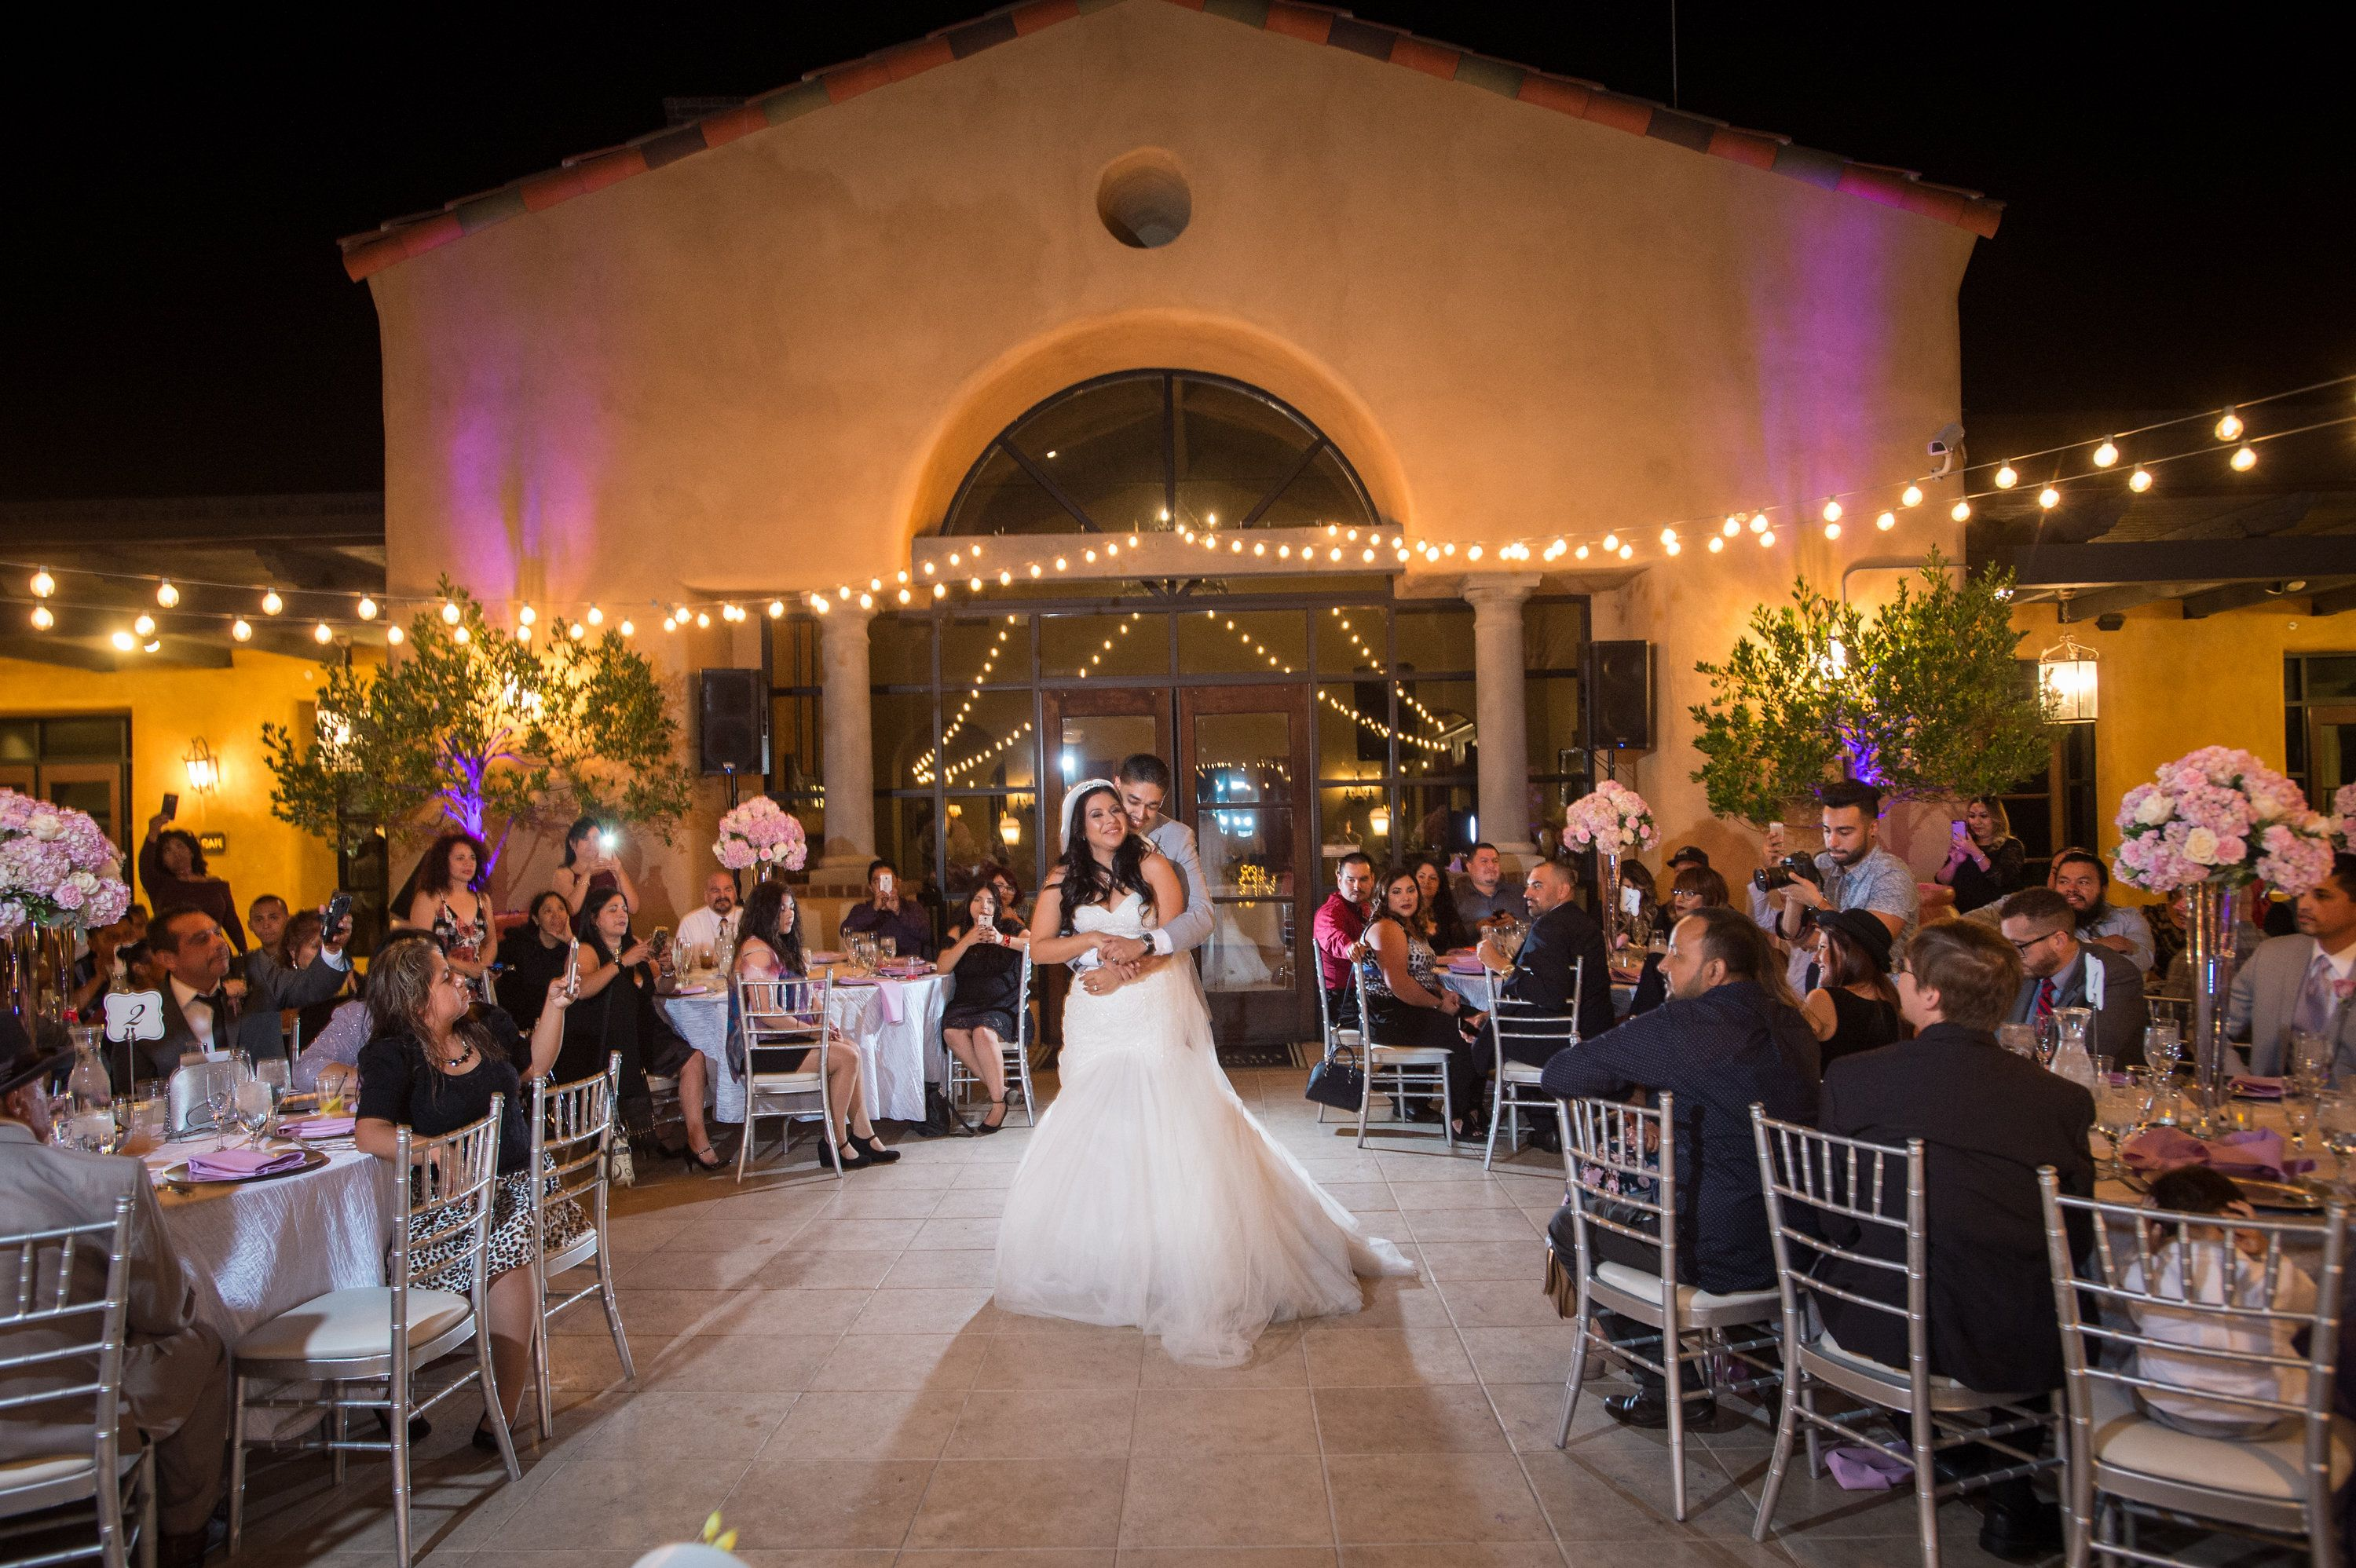 The place to wed in Corona, California. This venue is